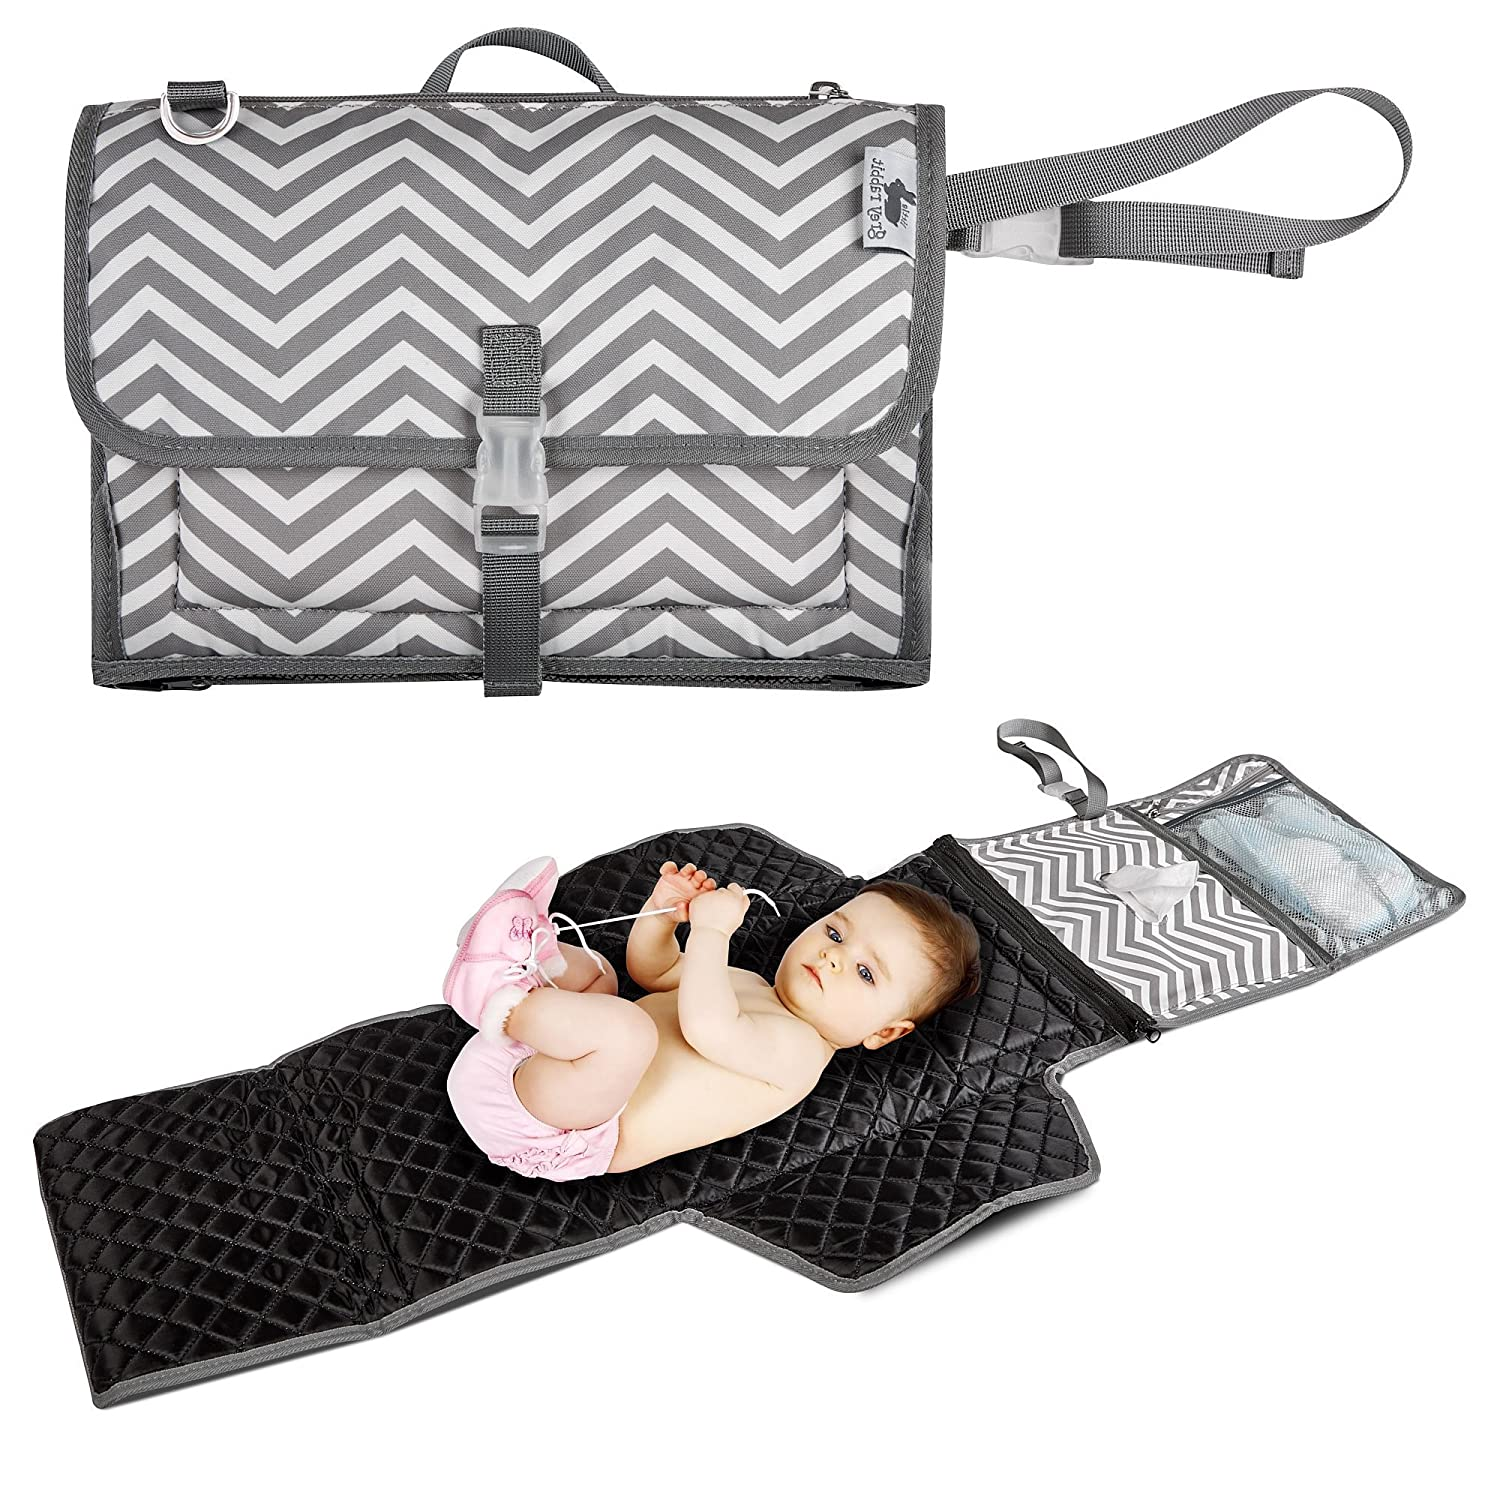 Quick Fold Diaper Changing Pad by Little Grey Rabbit | Baby Nursery or On The Go | Perfect Diaper Bag Accessory | (Simple, Grey Chevron)